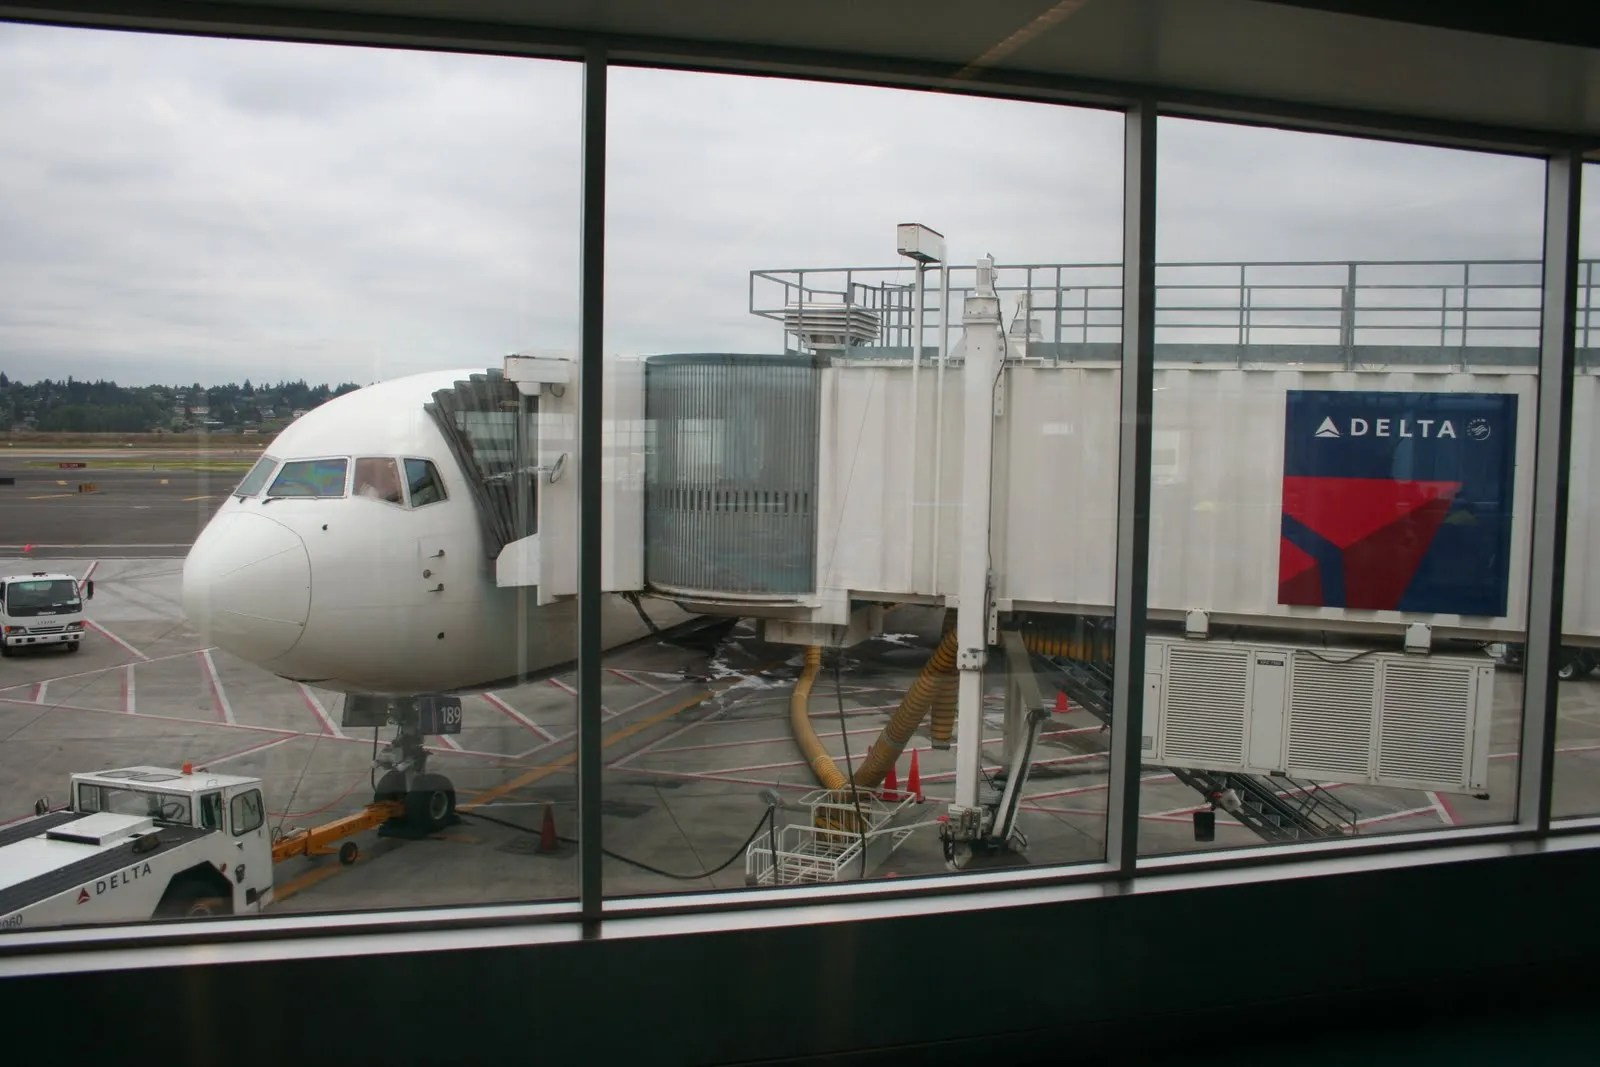 My chariot to Asia awaits